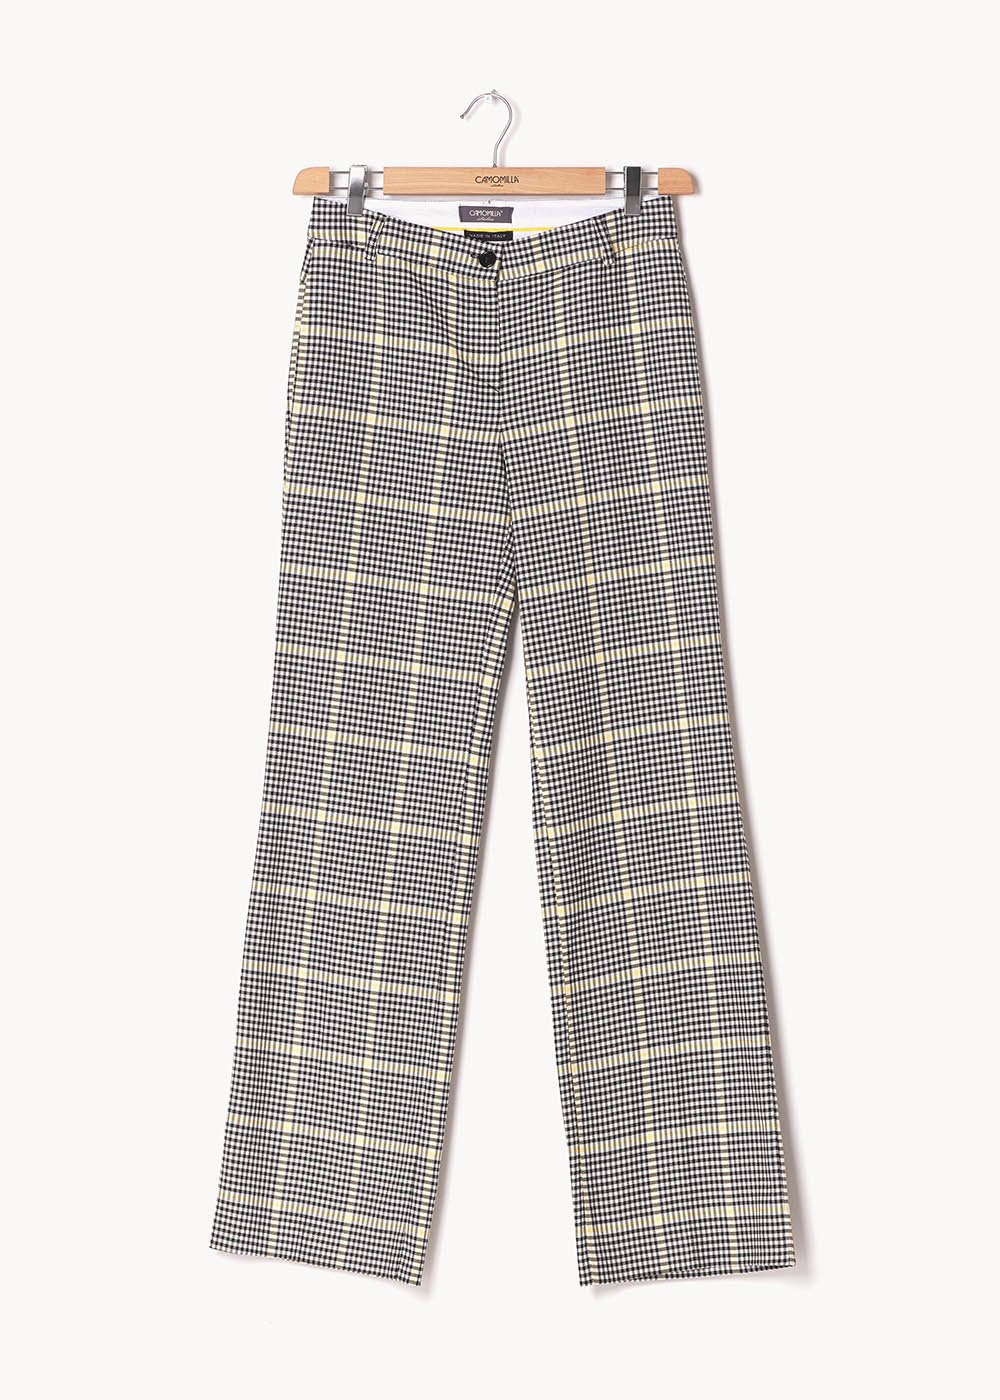 Clair trousers with check pattern - White Black Fantasia - Woman